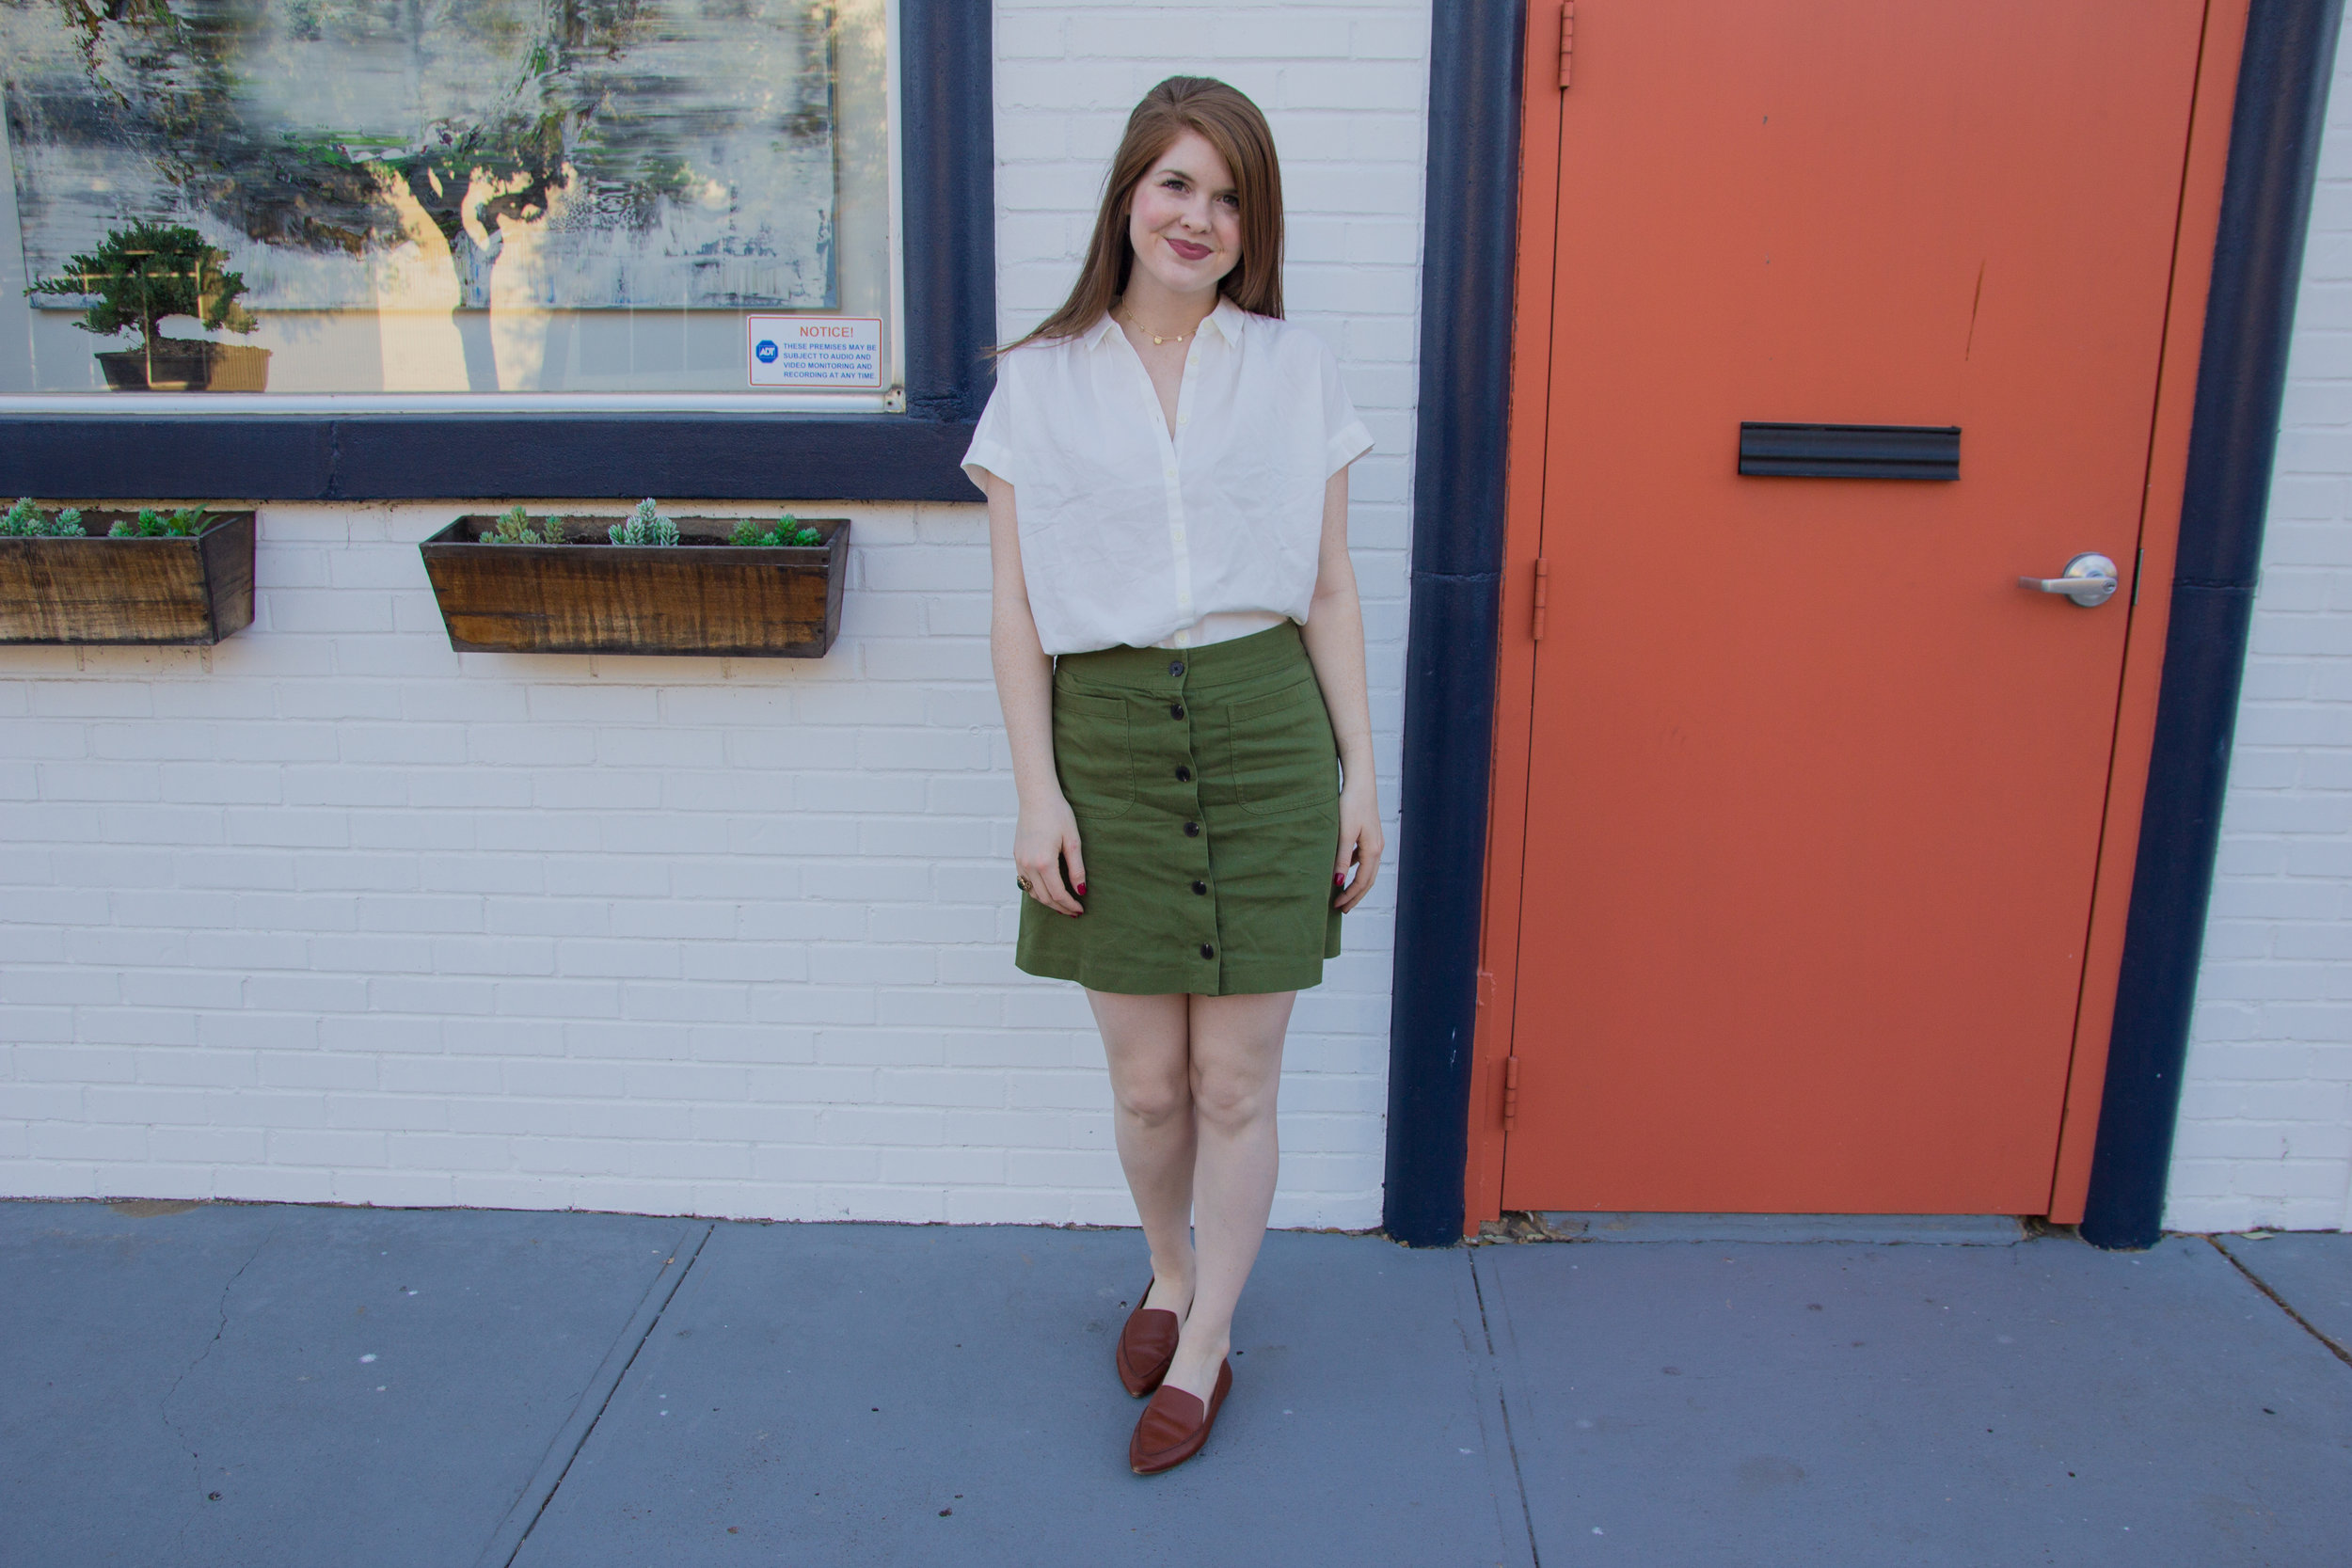 madewell central shirt in pure white, madewell station mini skirt, kendra scott olive long necklace in gold, lawless soft matte liquid lipstick in brad, madewell the frances loafer, the art of versatility, olive button up skirt 3 ways